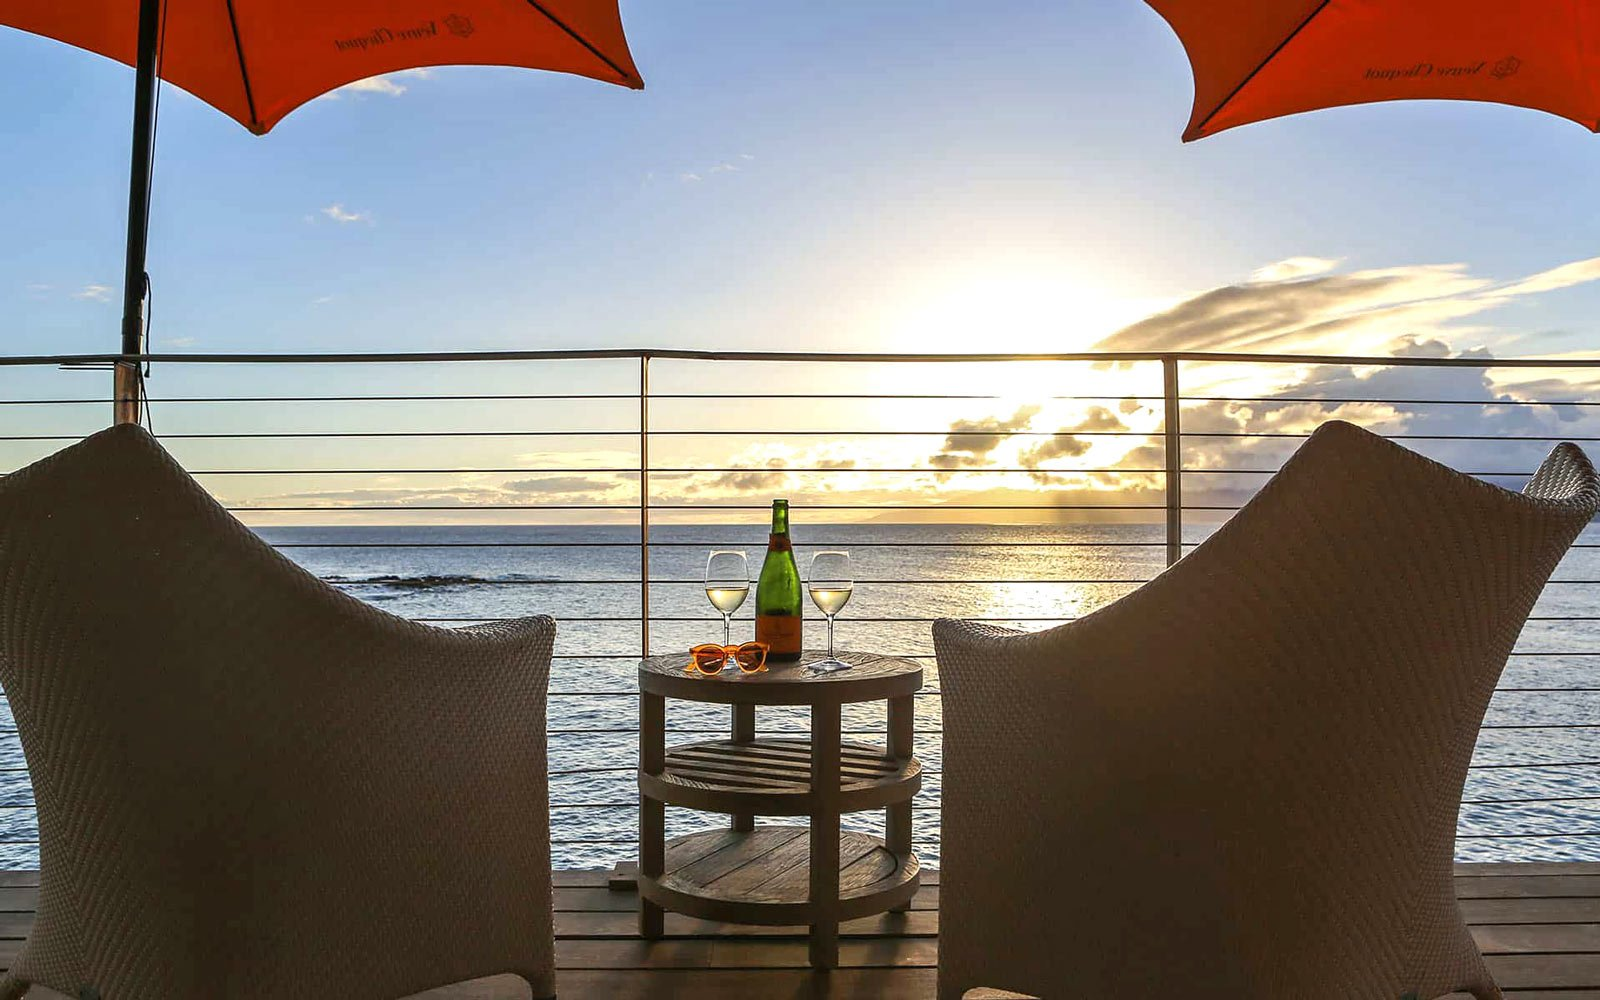 The Champagne Hale, a pop-up bar and lounge for champagne and sunsets